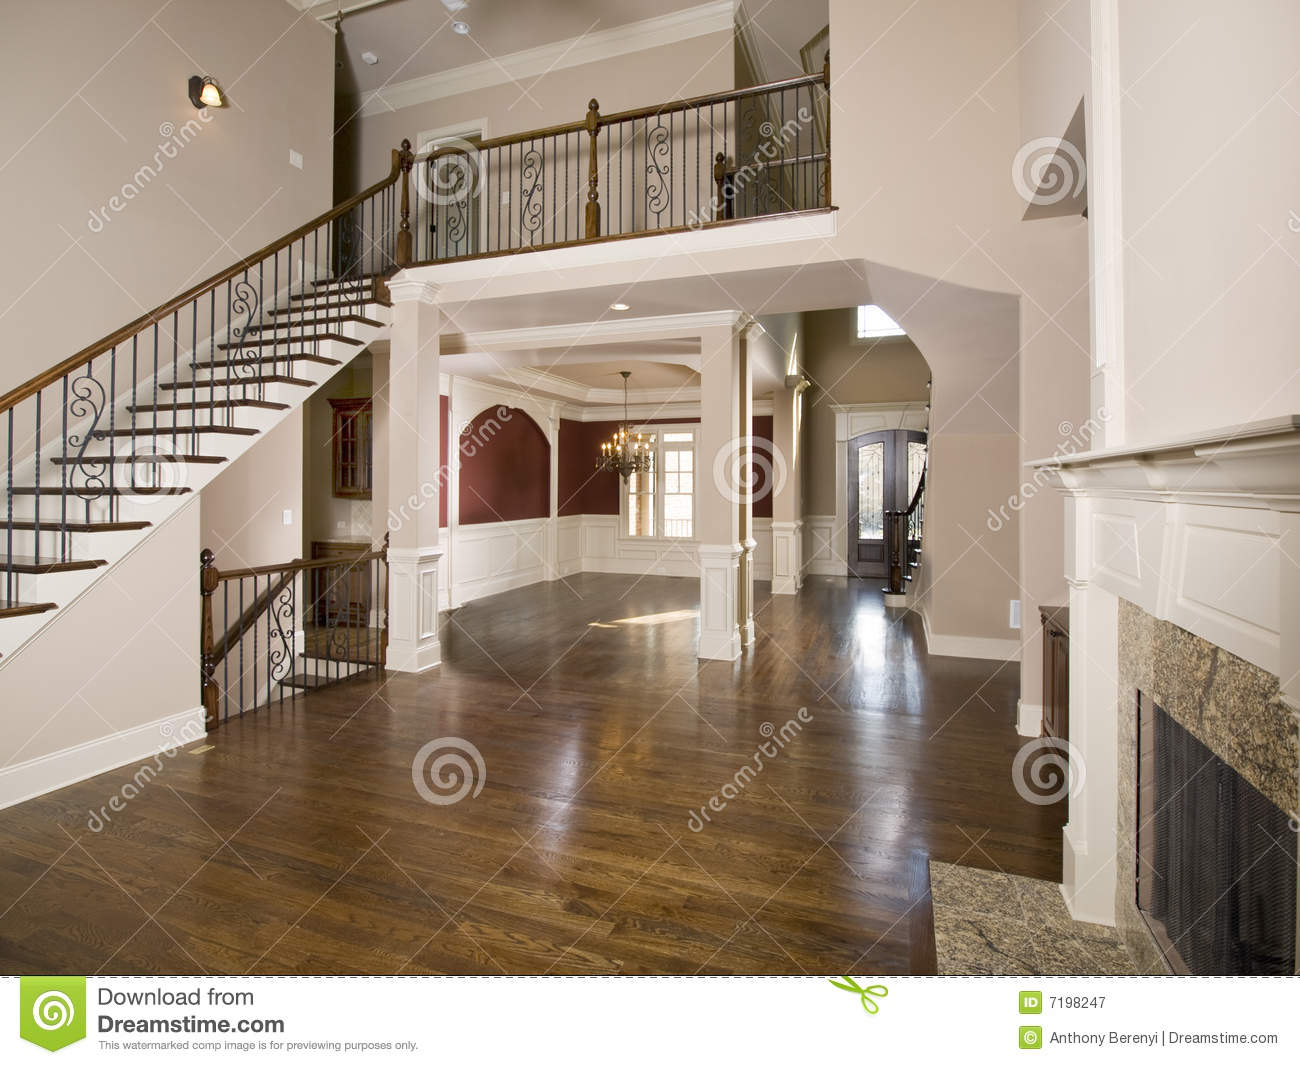 Opbergsysteem Keuken Staircase To Luxury Living Room Wide View Stock Image